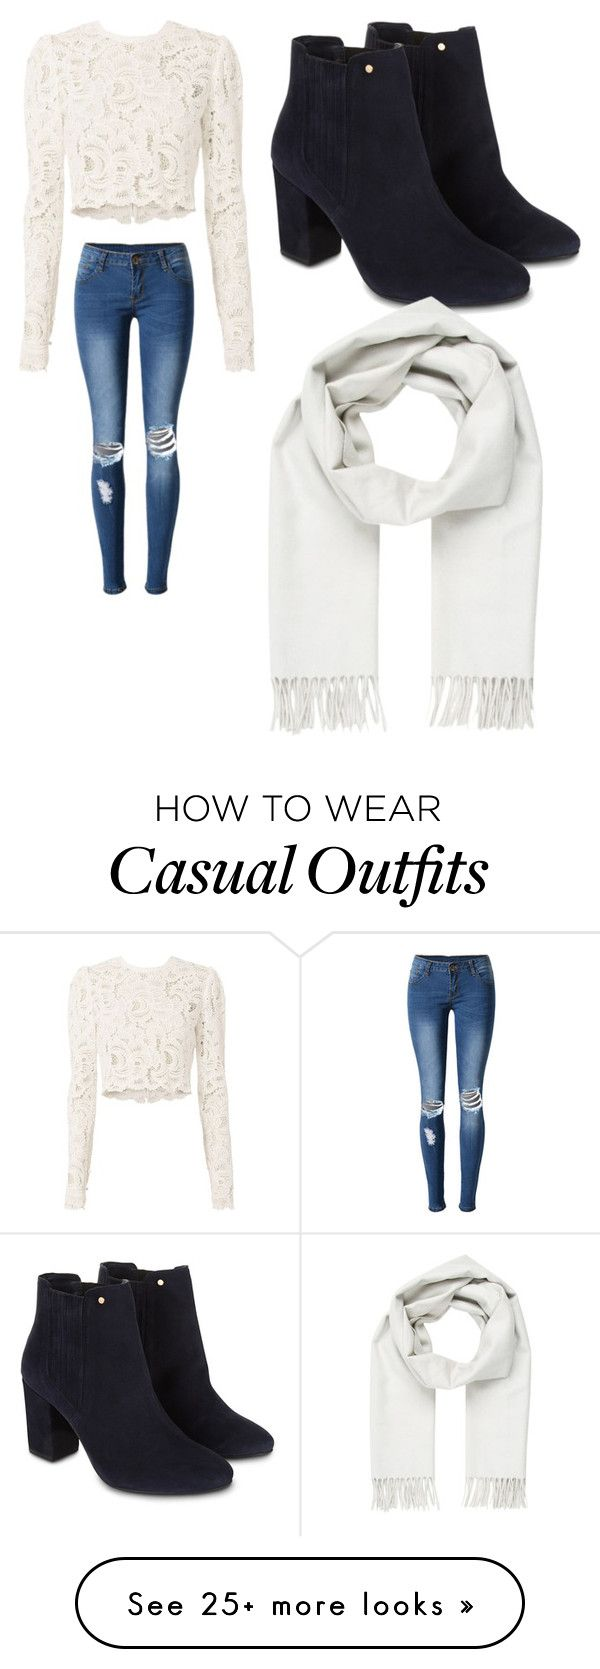 """casual look"" by charlenebrady on Polyvore featuring A.L.C., WithChic, Monsoon and Brioni"